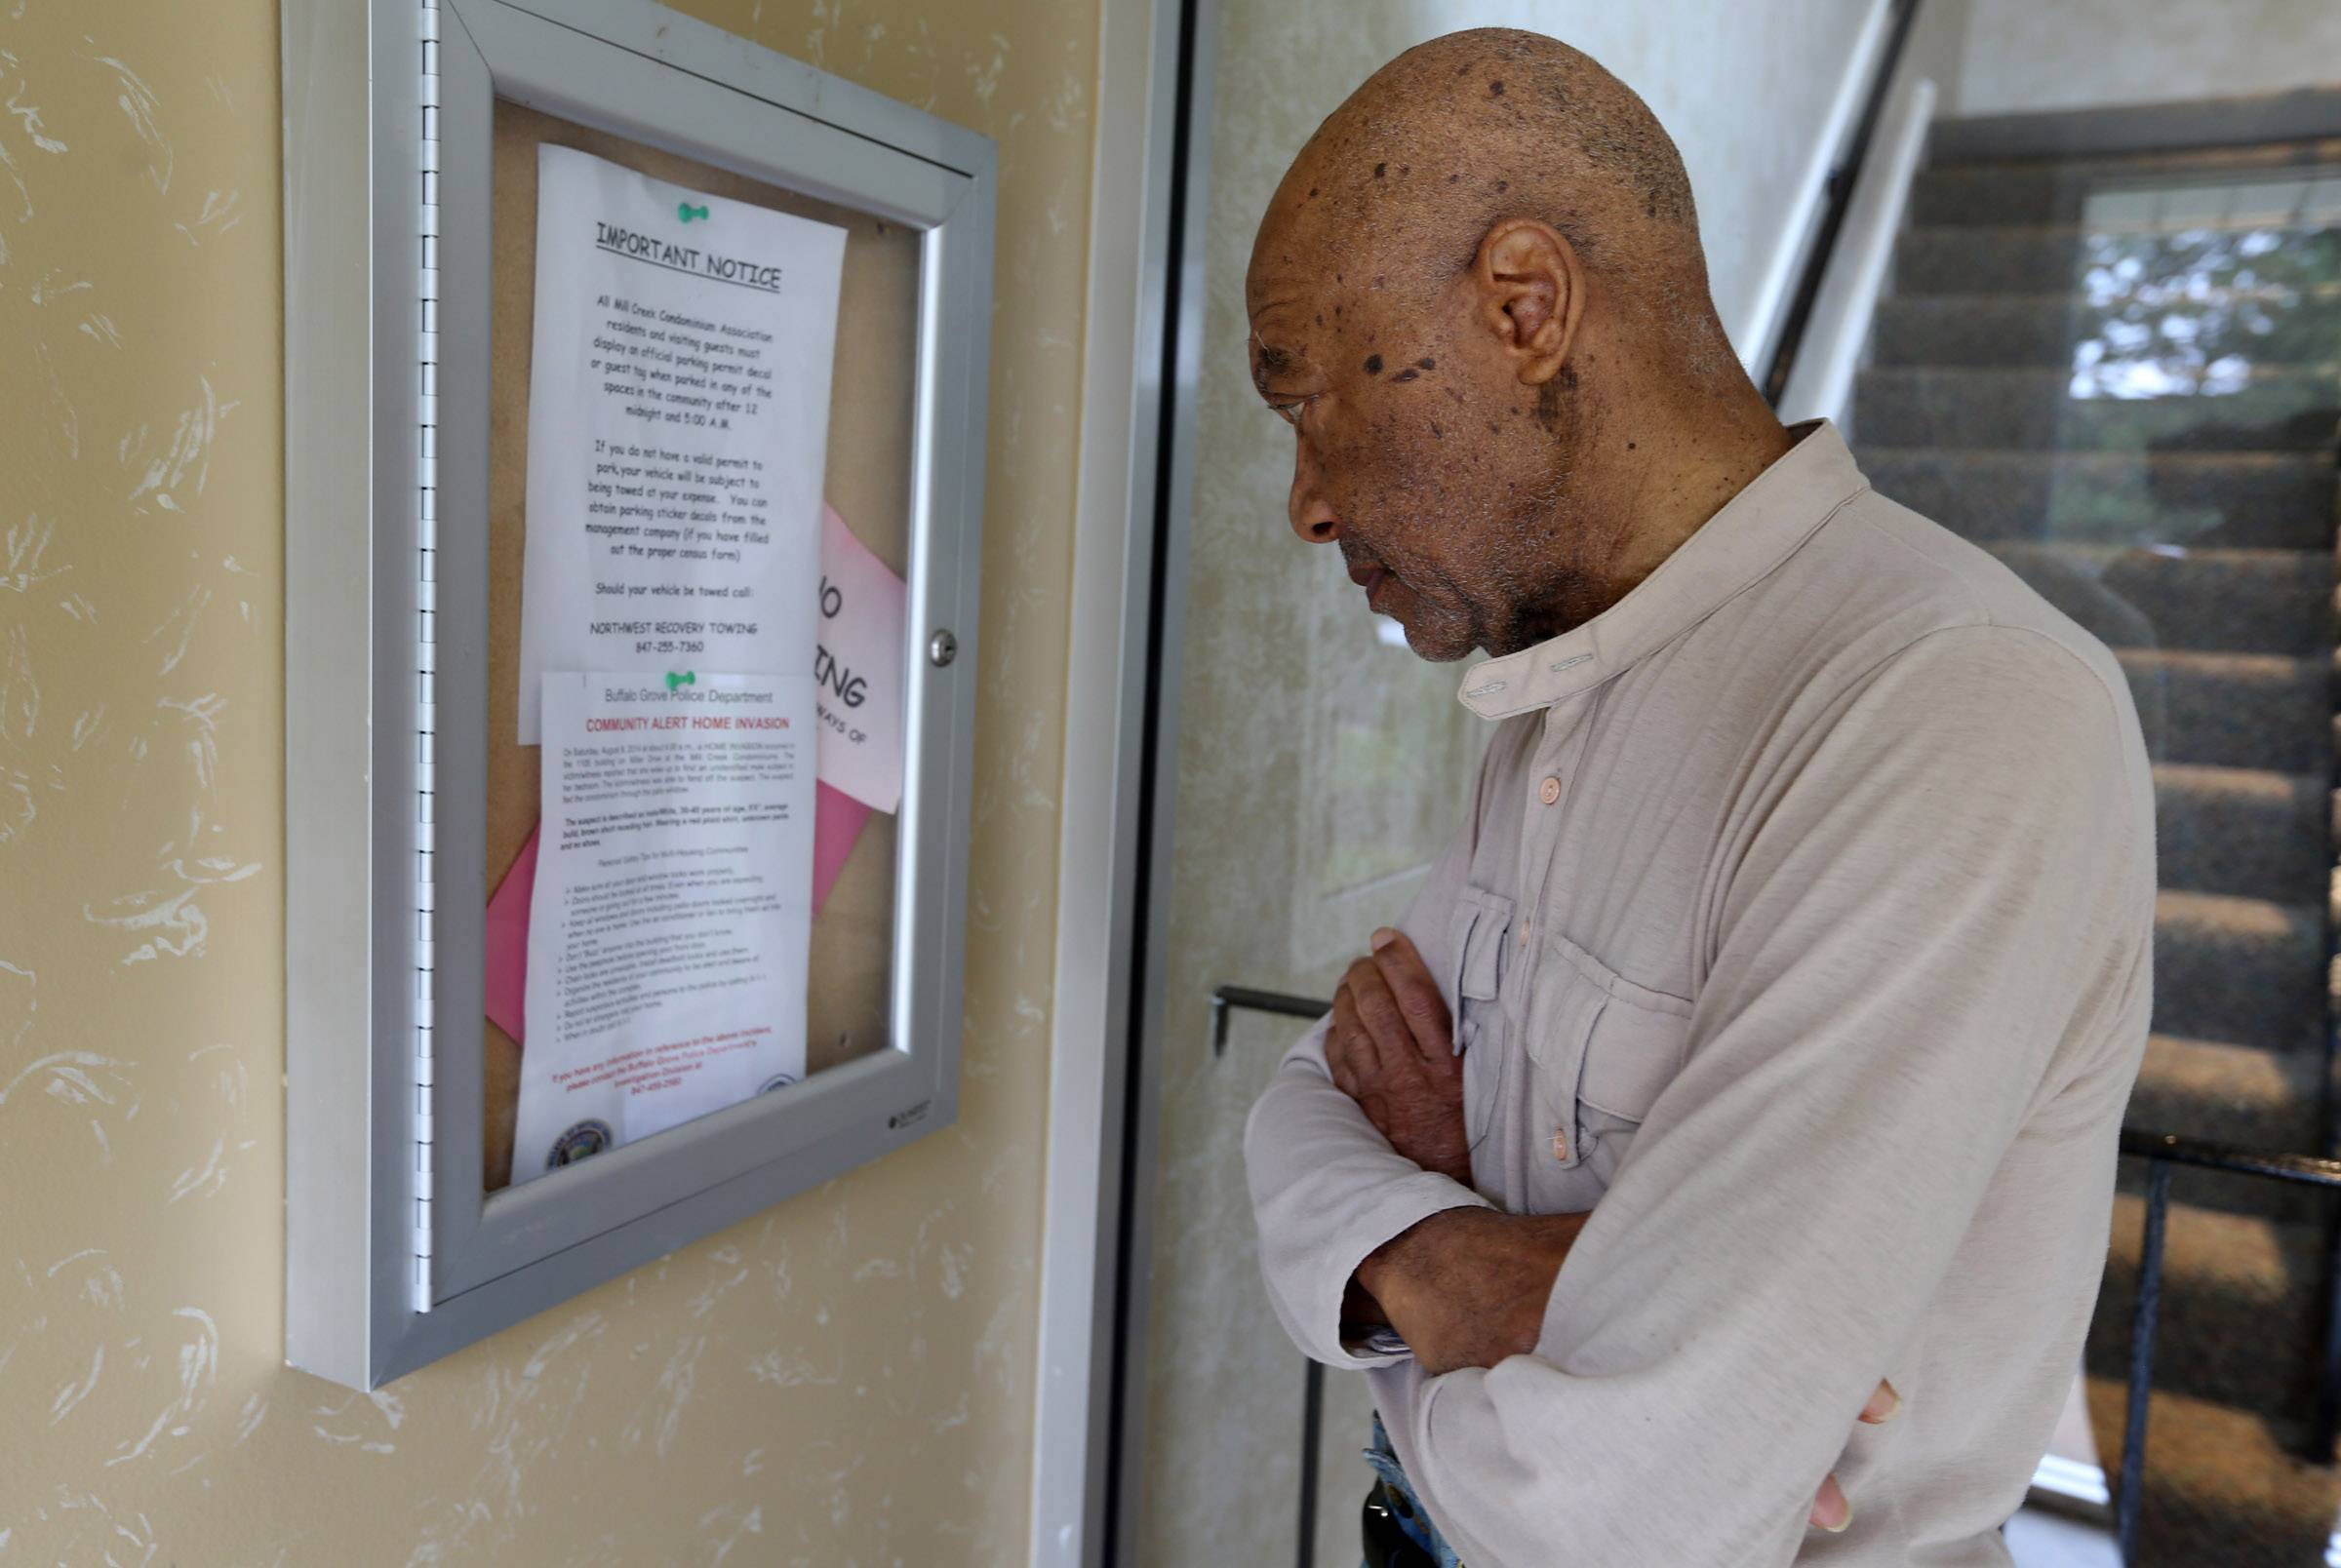 T. Edwards Plack reads a notice by Buffalo Grove police in a building at Mill Creek Condominiums in Buffalo Grove.